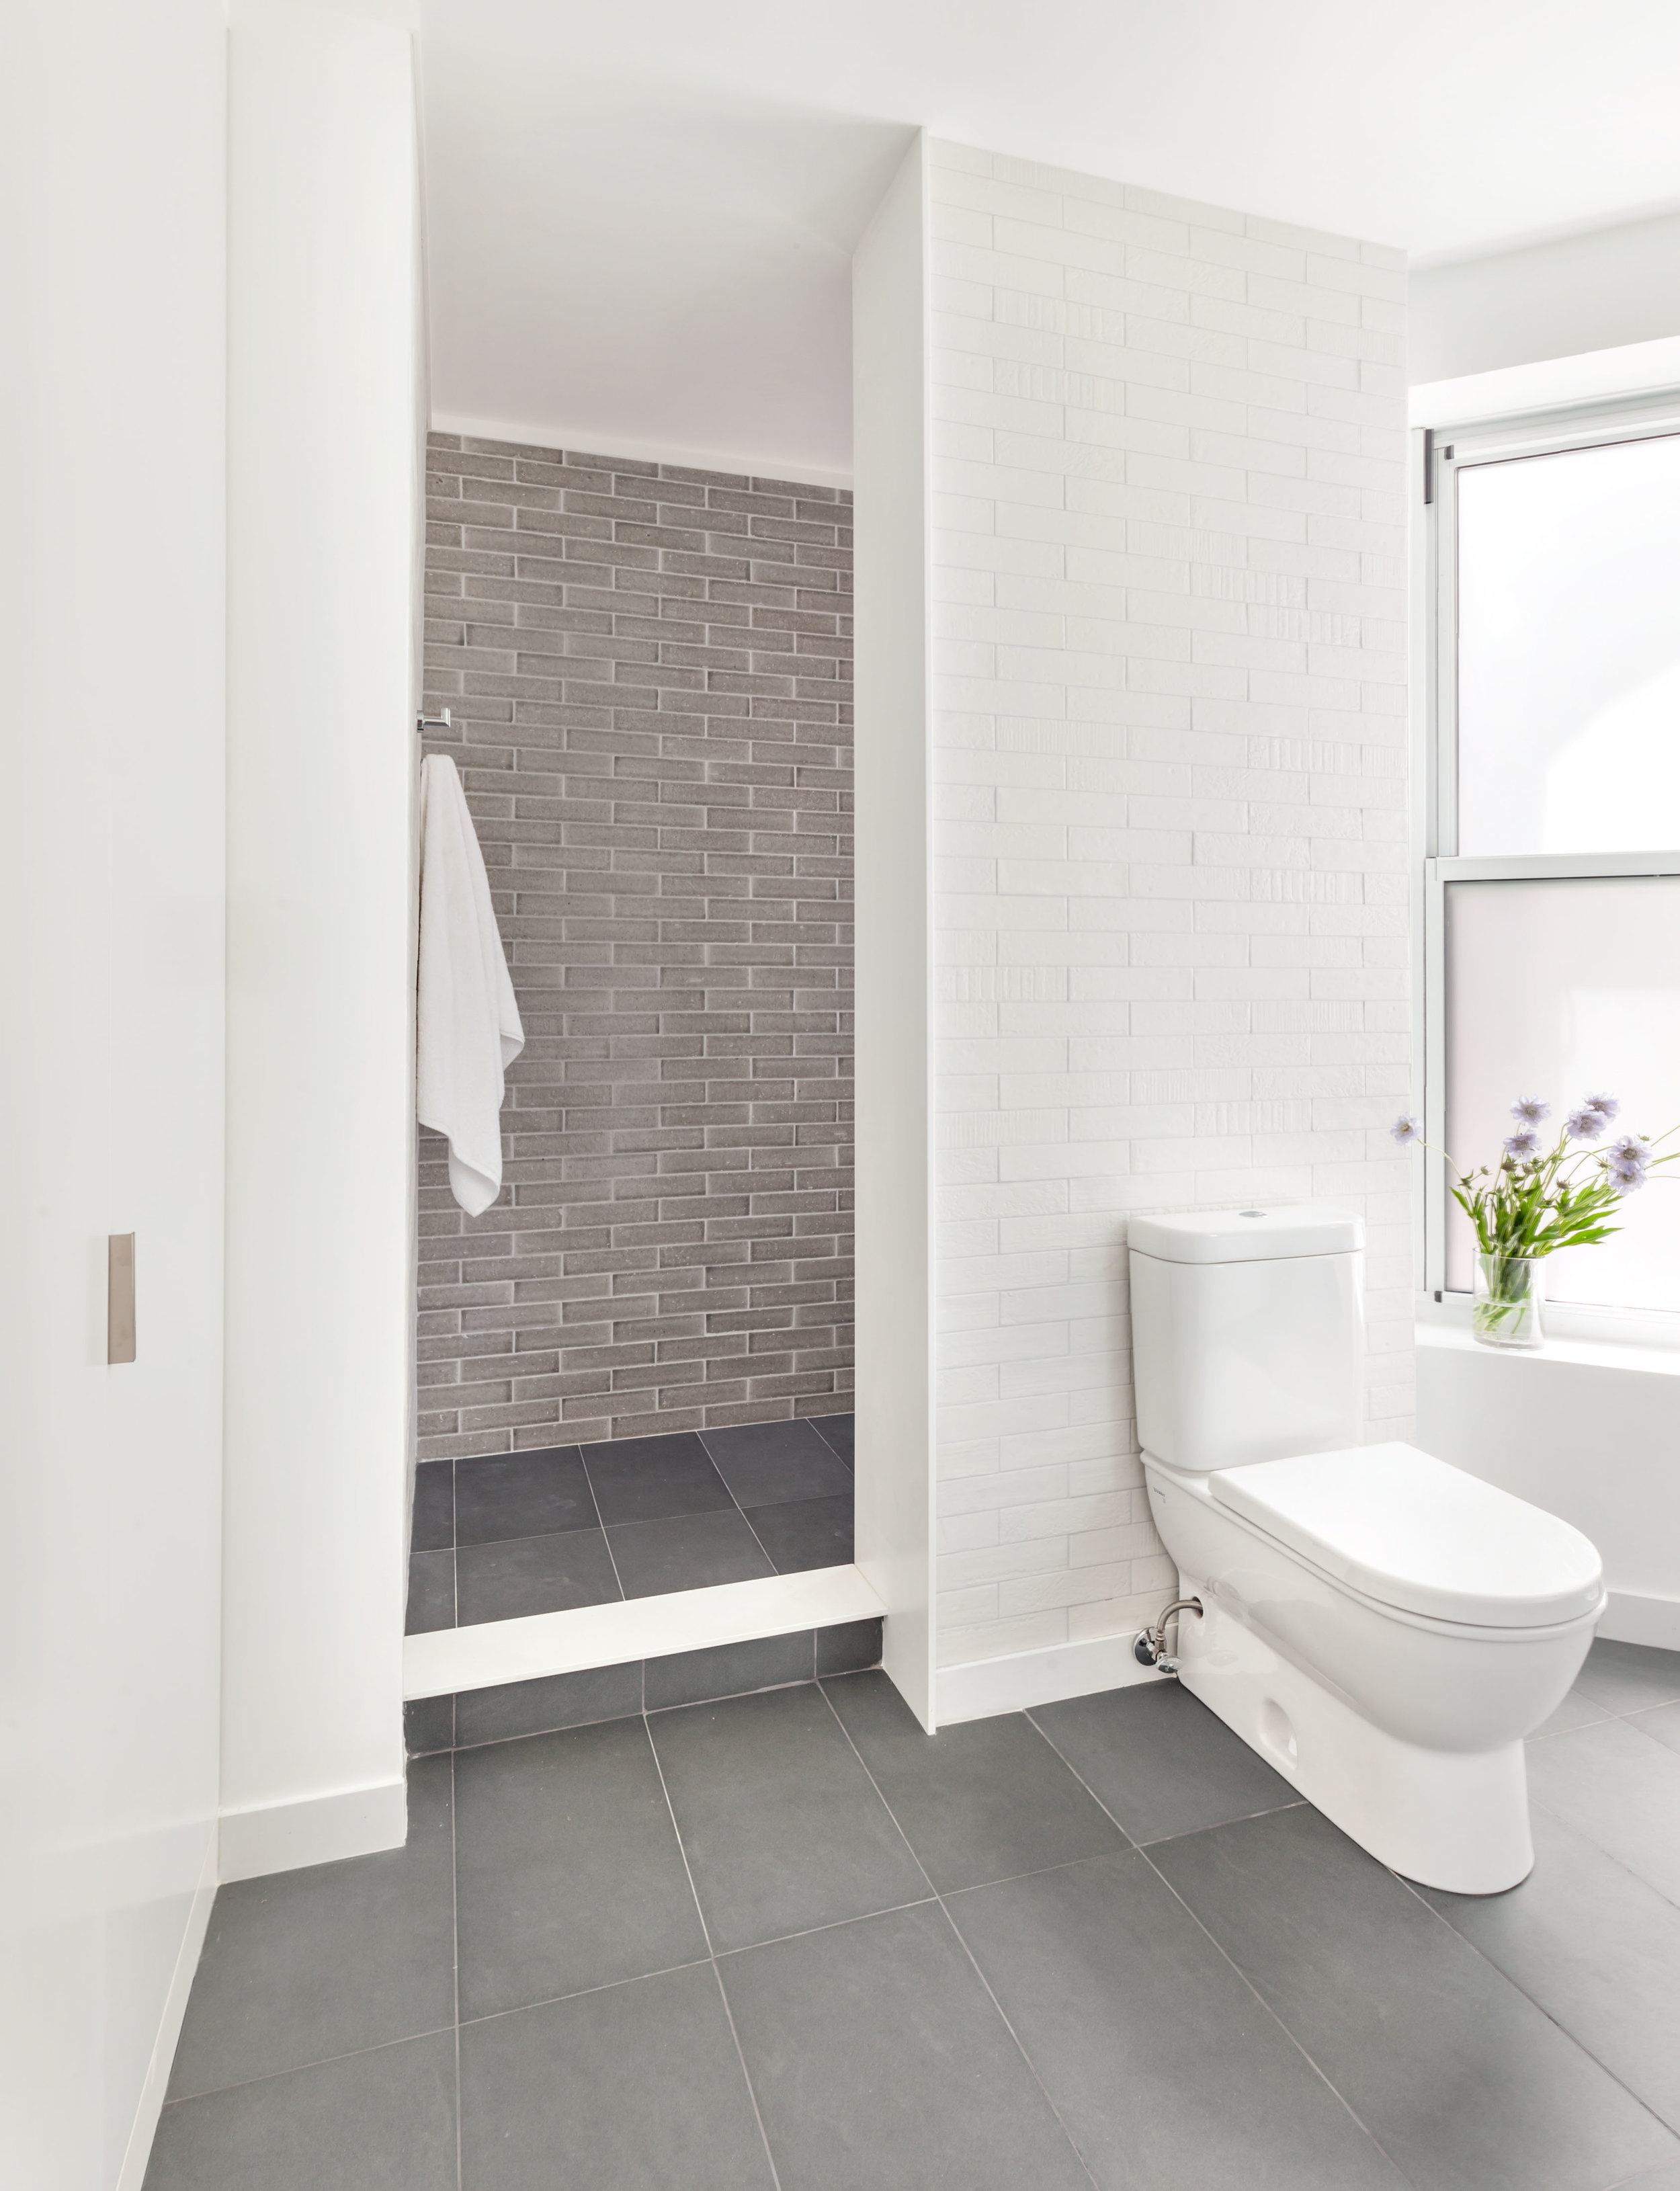 Ensuite master bathroom with white, brick textured tile and gray accent tile in the shower.